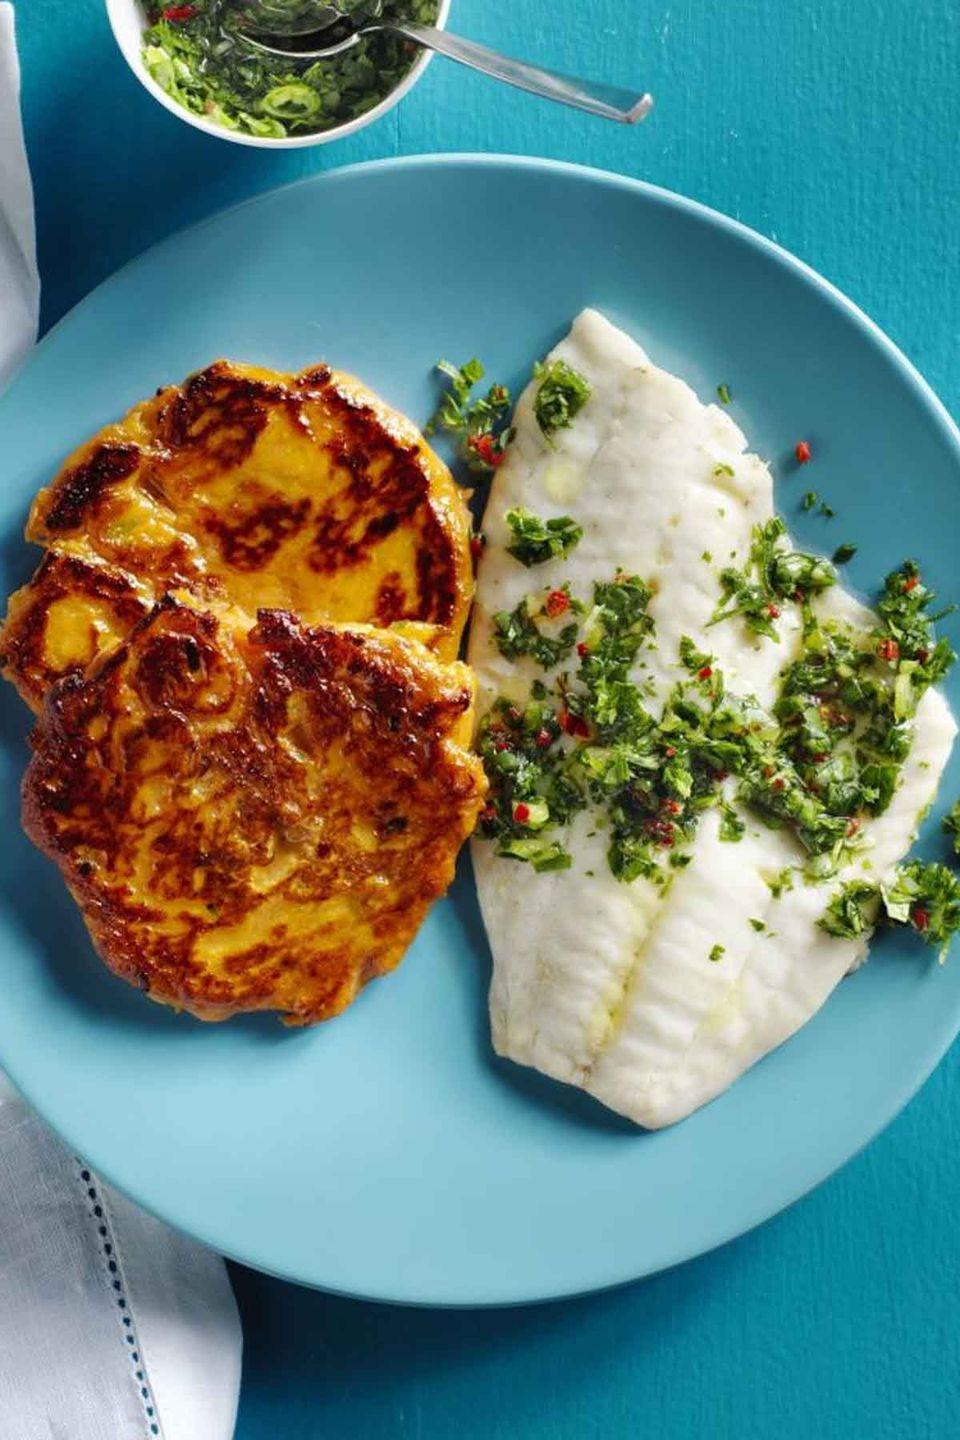 """<p>This tilapia tastes out-of-this-world good thanks to the chimichurri sauce on top and the sweet potato side.</p><p><a href=""""https://www.womansday.com/food-recipes/food-drinks/recipes/a57690/tilapia-sweet-potato-cakes-chimichurri-recipe/"""" rel=""""nofollow noopener"""" target=""""_blank"""" data-ylk=""""slk:Get the recipe for Tilapia with Sweet Potato Cakes and Chimichurri."""" class=""""link rapid-noclick-resp""""><em>Get the recipe for Tilapia with Sweet Potato Cakes and Chimichurri.</em></a></p>"""